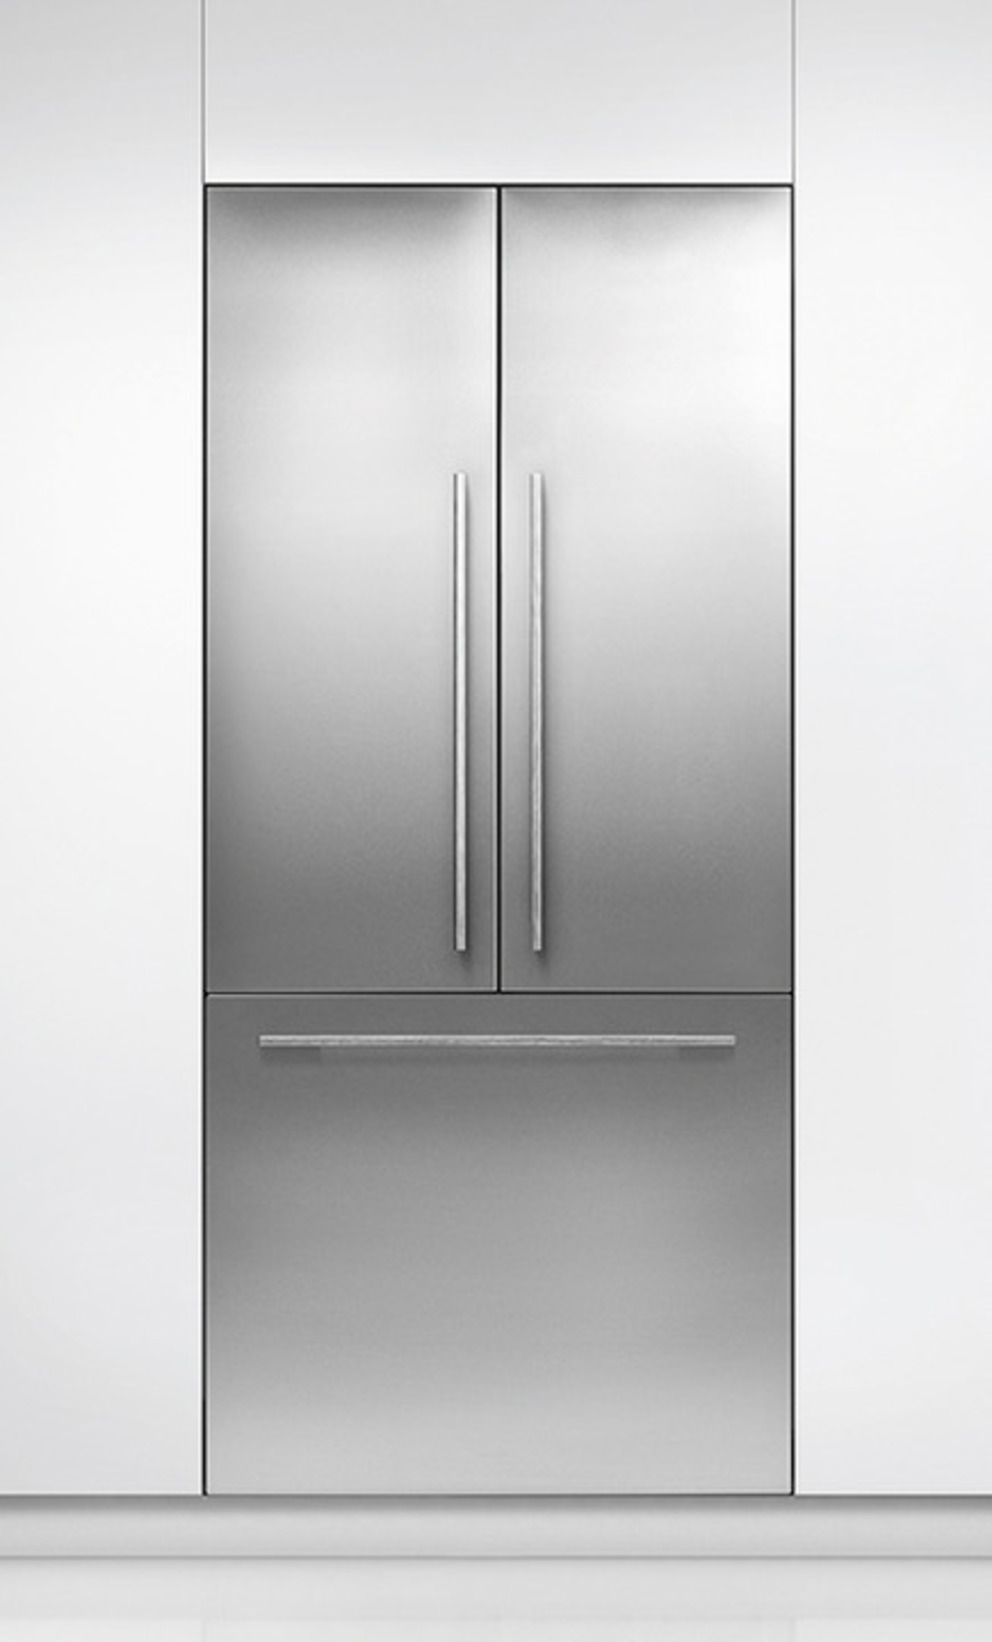 Réfrigérateurs Fisher&Paykel RS36A80J1 + RD3680 (80'' F&P)